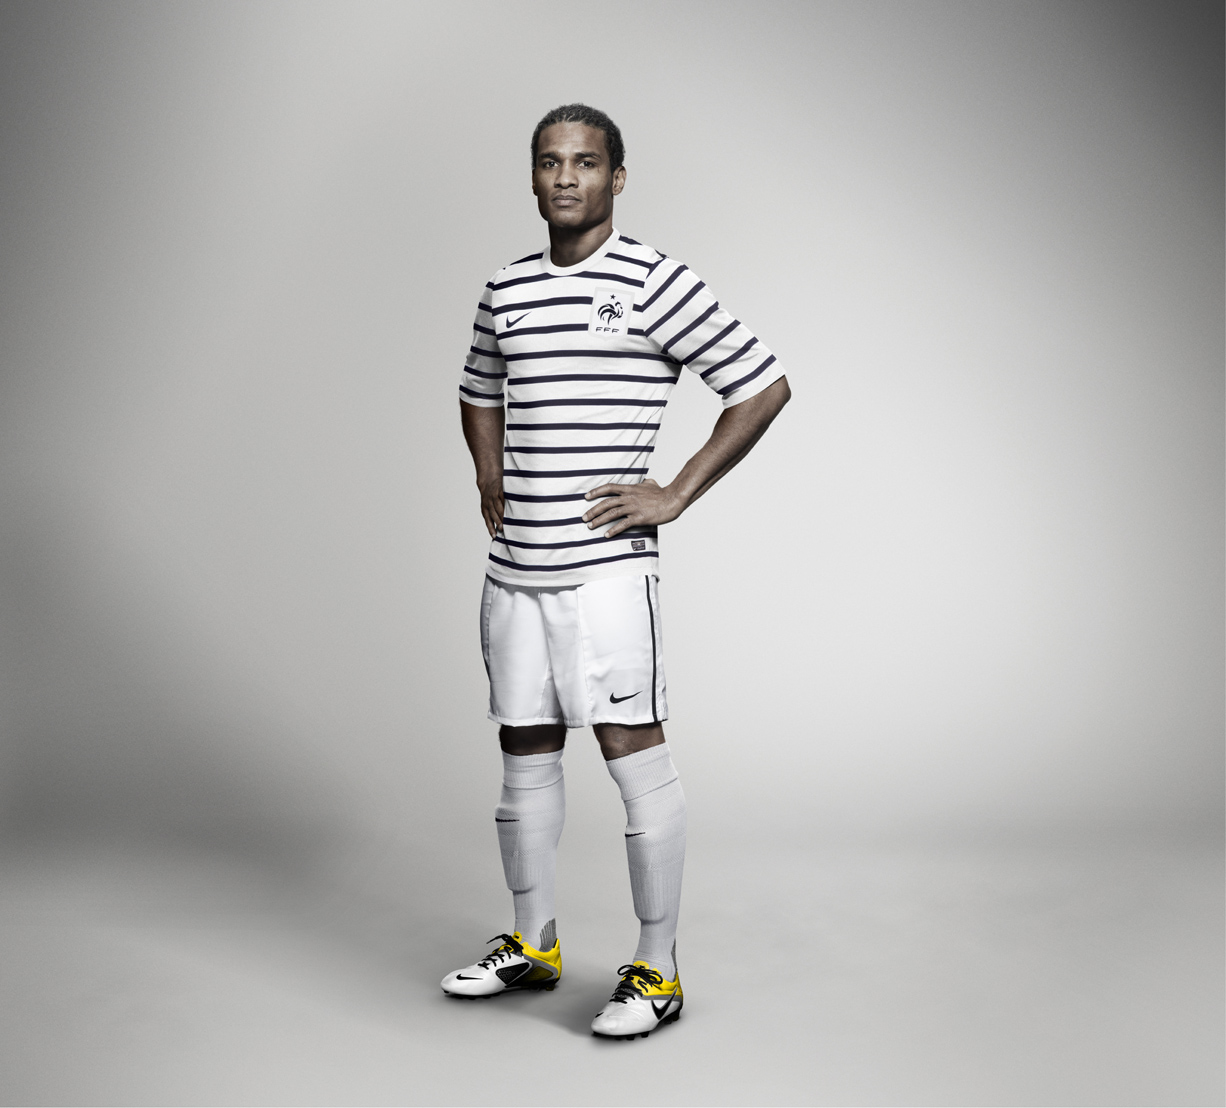 9bb231aee716 Karl Lagerfeld did not had another step in the world of football - the  France 2011 away jersey is the only soccer piece the designer helped to  create.